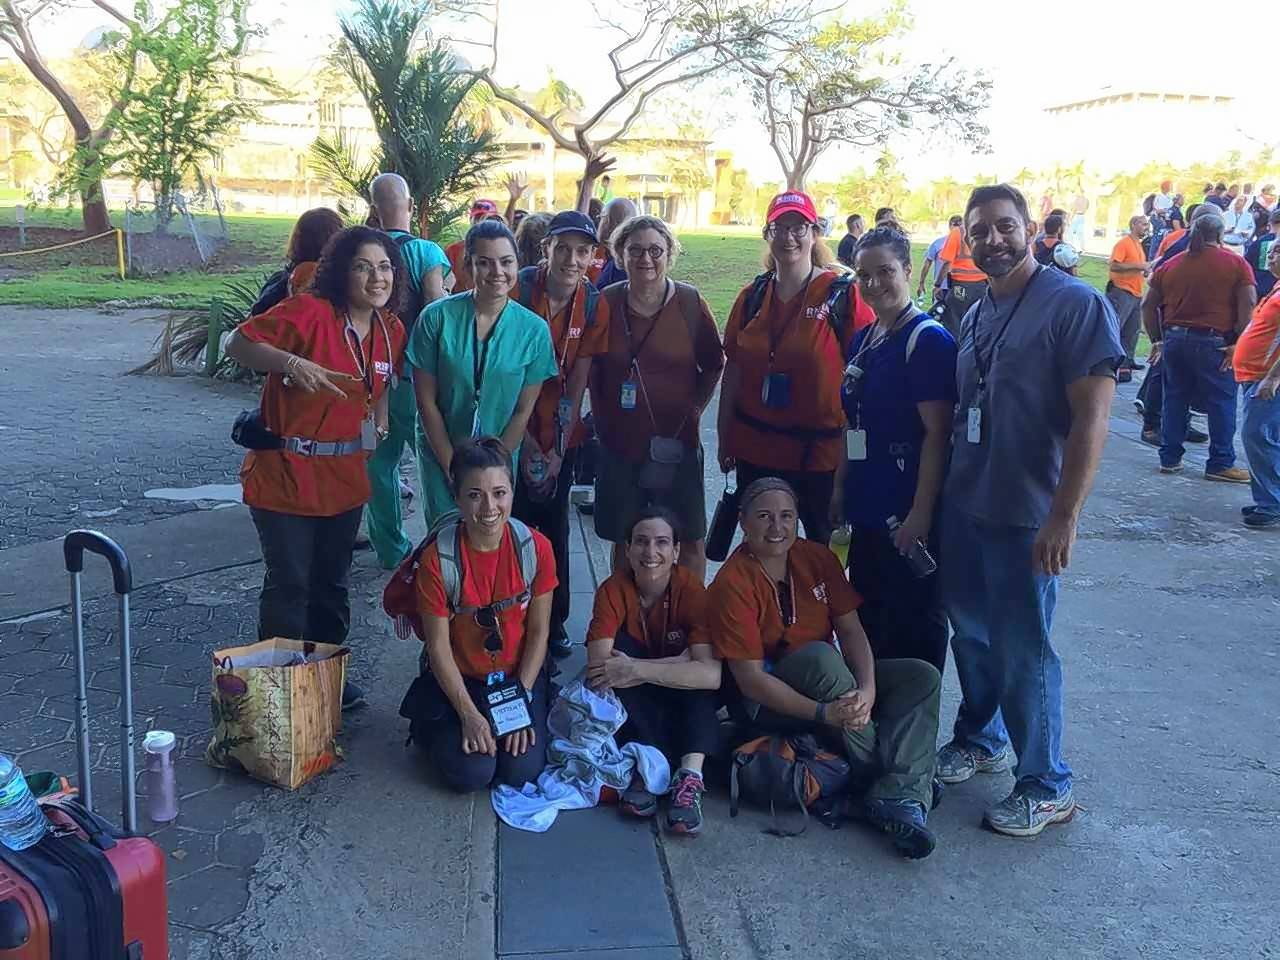 Dr. Timothy Laurie, a gastroenterologist at Advocate Lutheran General Hospital in Park Ridge, is pictured, far right, with other labor and health care volunteers in Puerto Rico. Dr. Laurie was in Puerto Rico for a week providing medical care and medical education to residents.